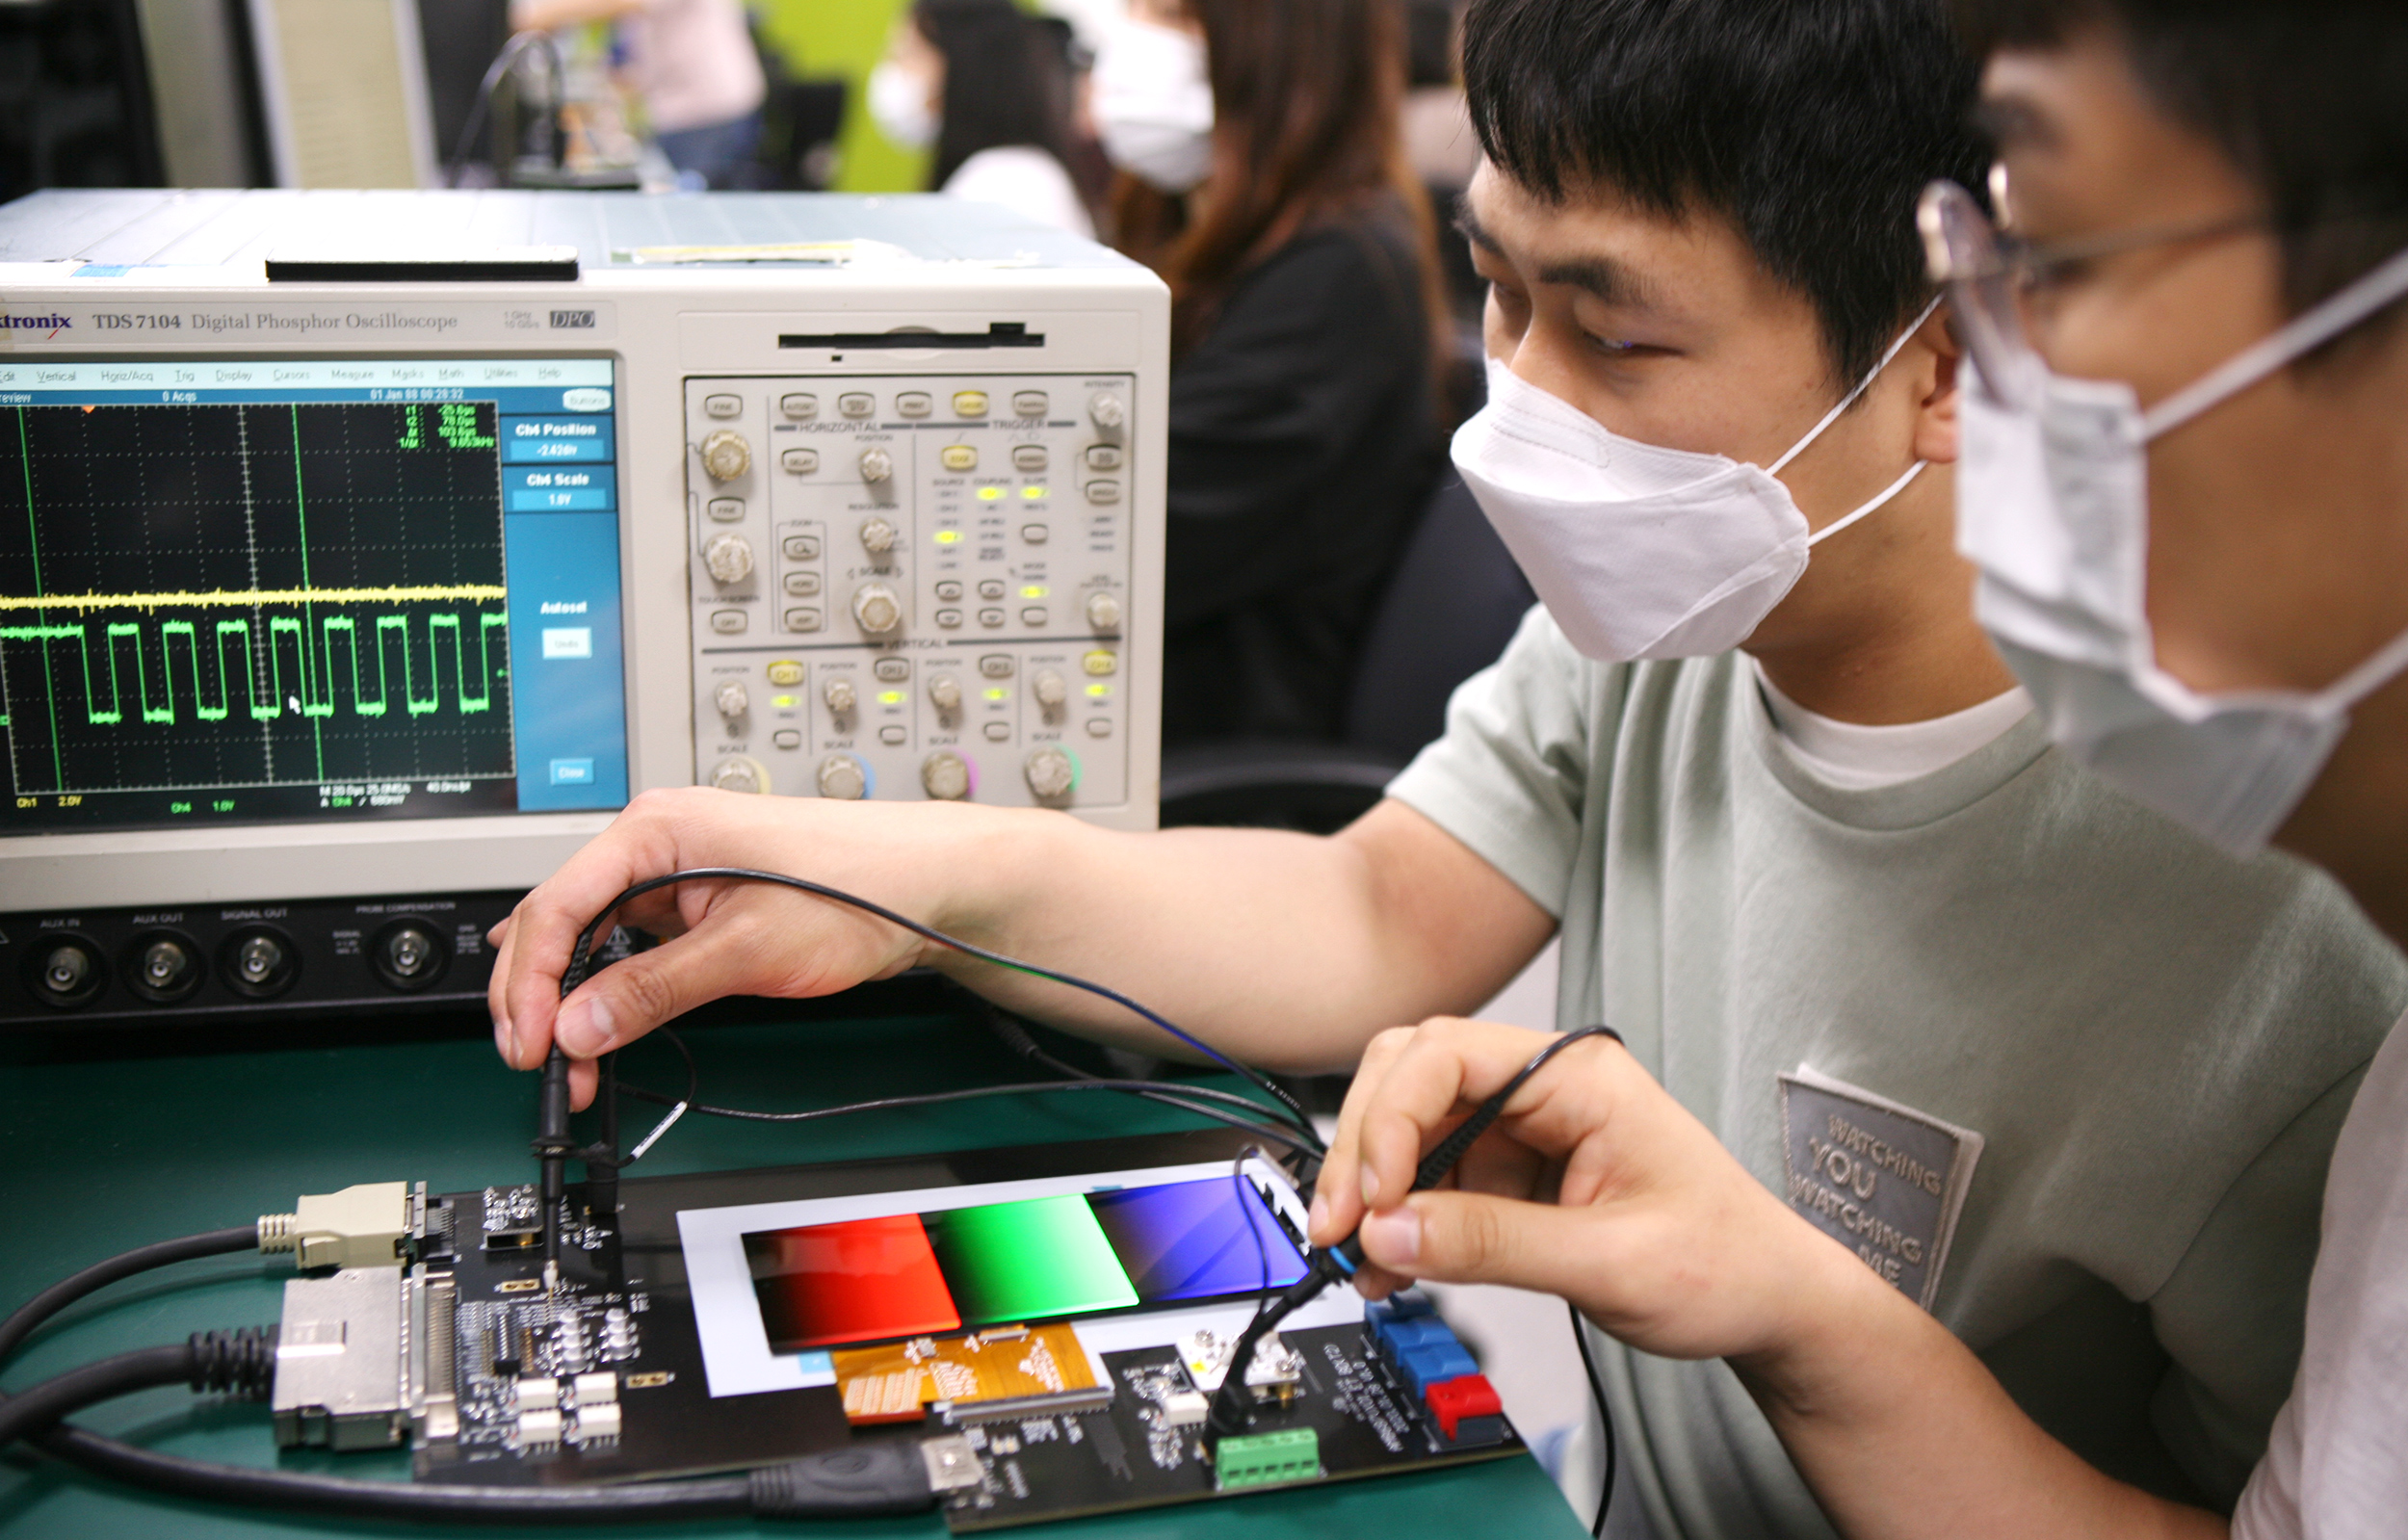 Engineers from Samsung Display are using testing devices to inspect frequency changes in display panels that feature adaptive frequency technology.